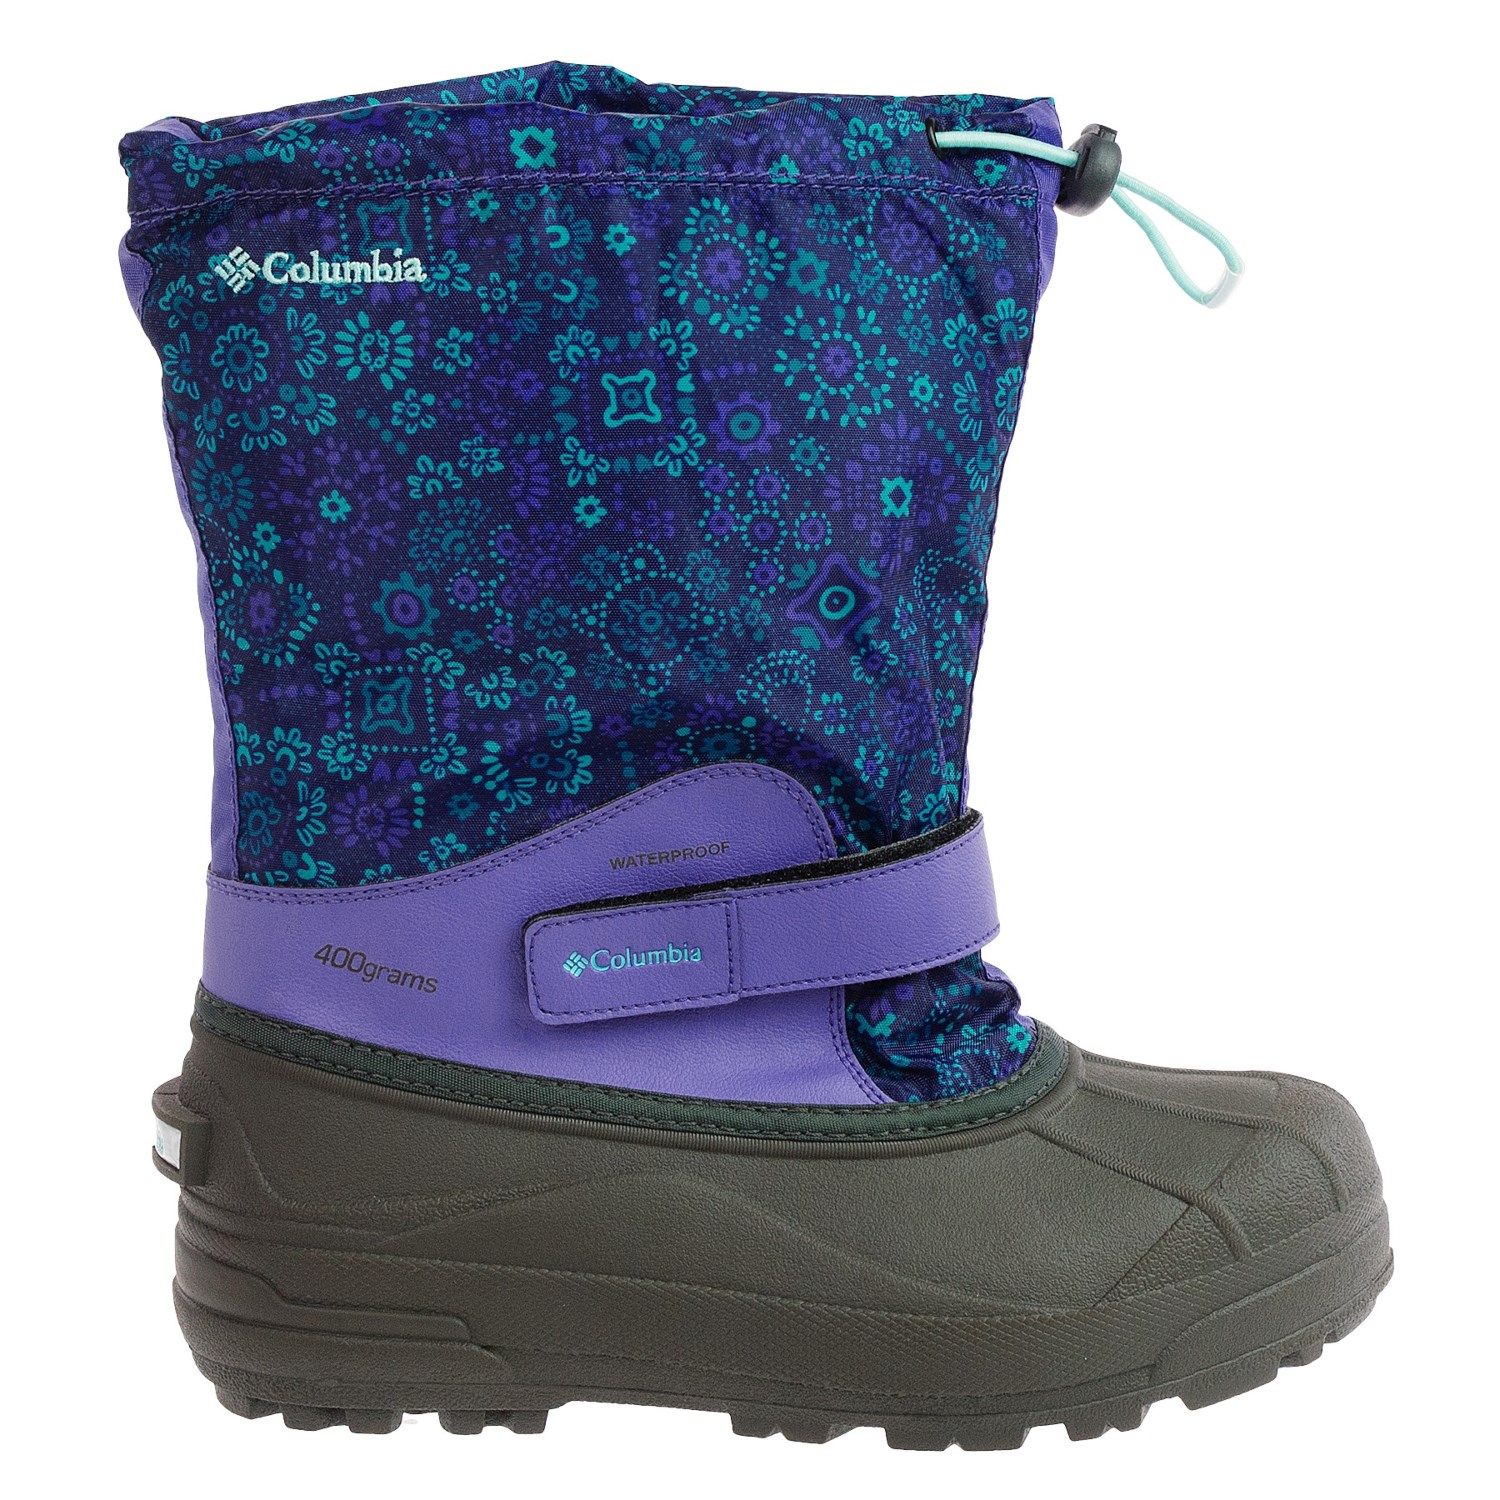 Columbia Snow Boots For Kids | Division of Global Affairs